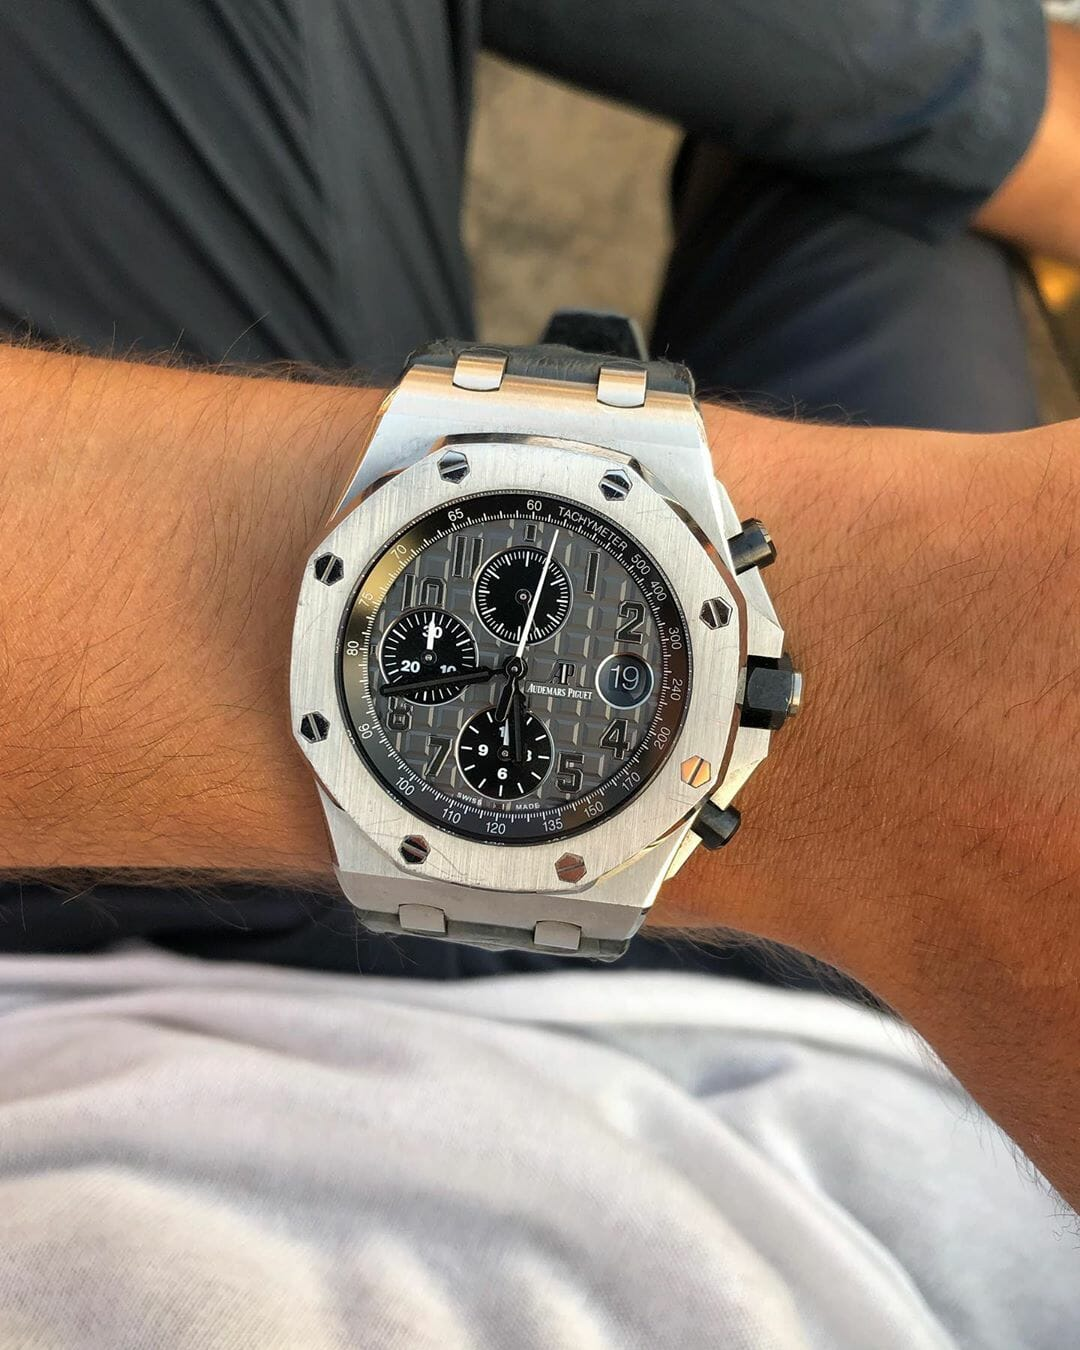 16 Audemars Piguet Royal Oak Offshore Elefant by IG @watchrookiee - Image 2